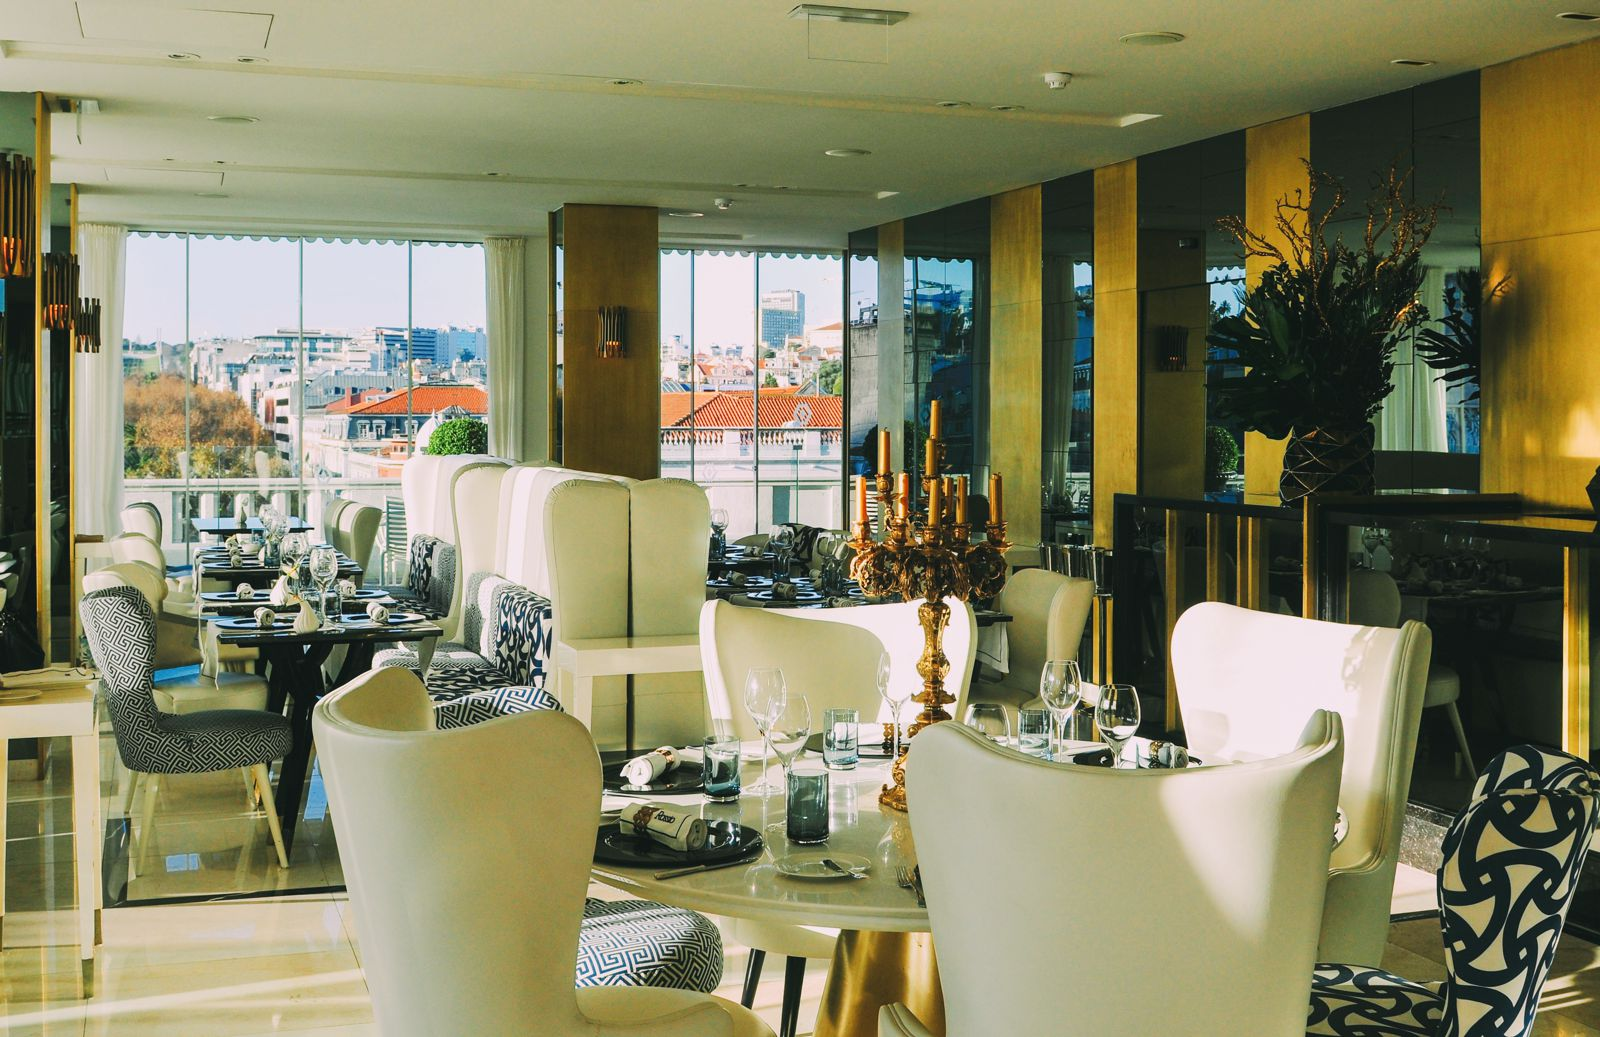 11 Amazing Restaurants With The Best Views In Lisbon, Portugal (4)